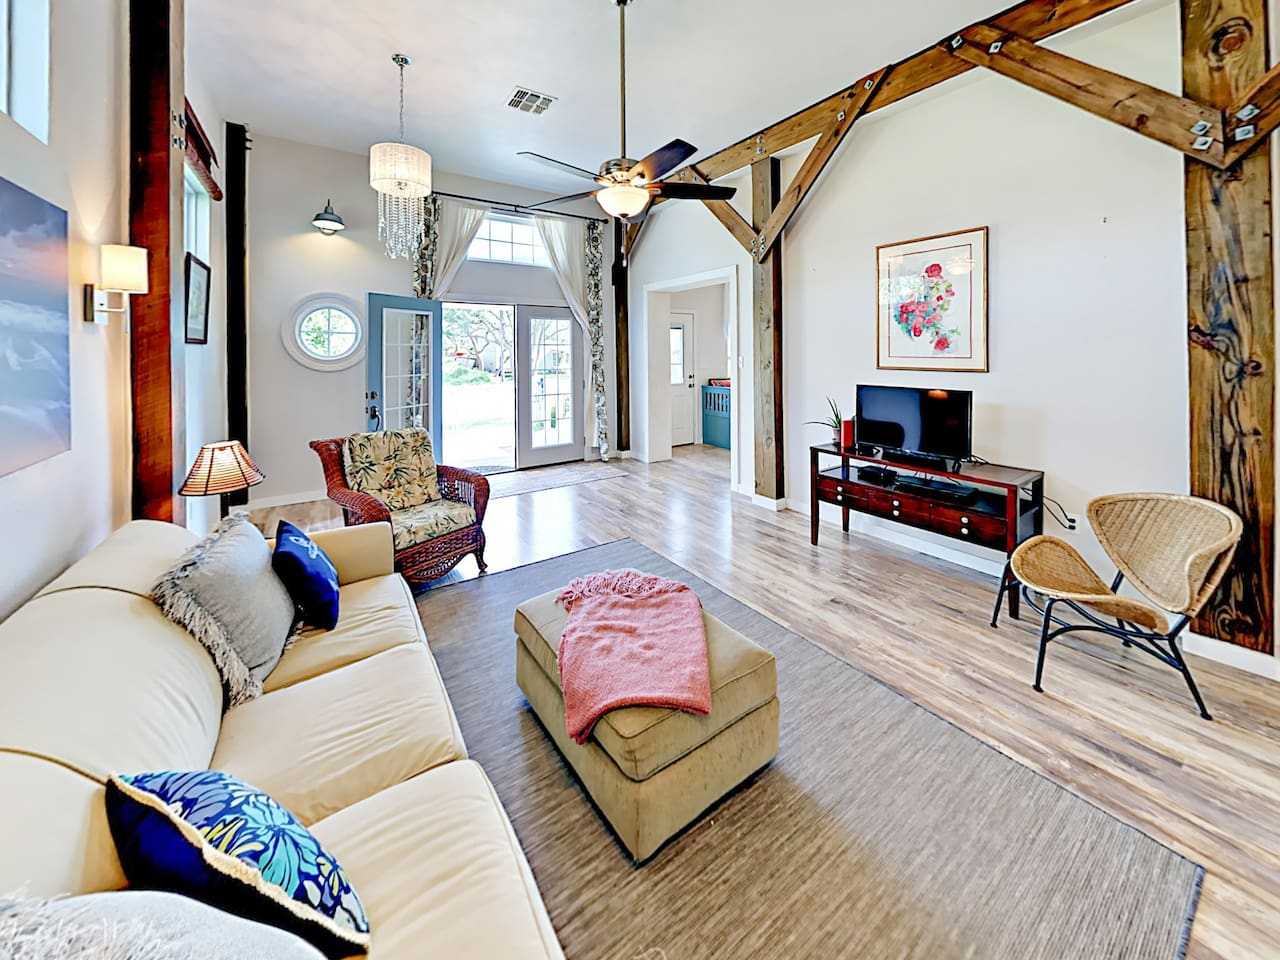 This stunning home is professionally managed by TurnKey Vacation Rentals.